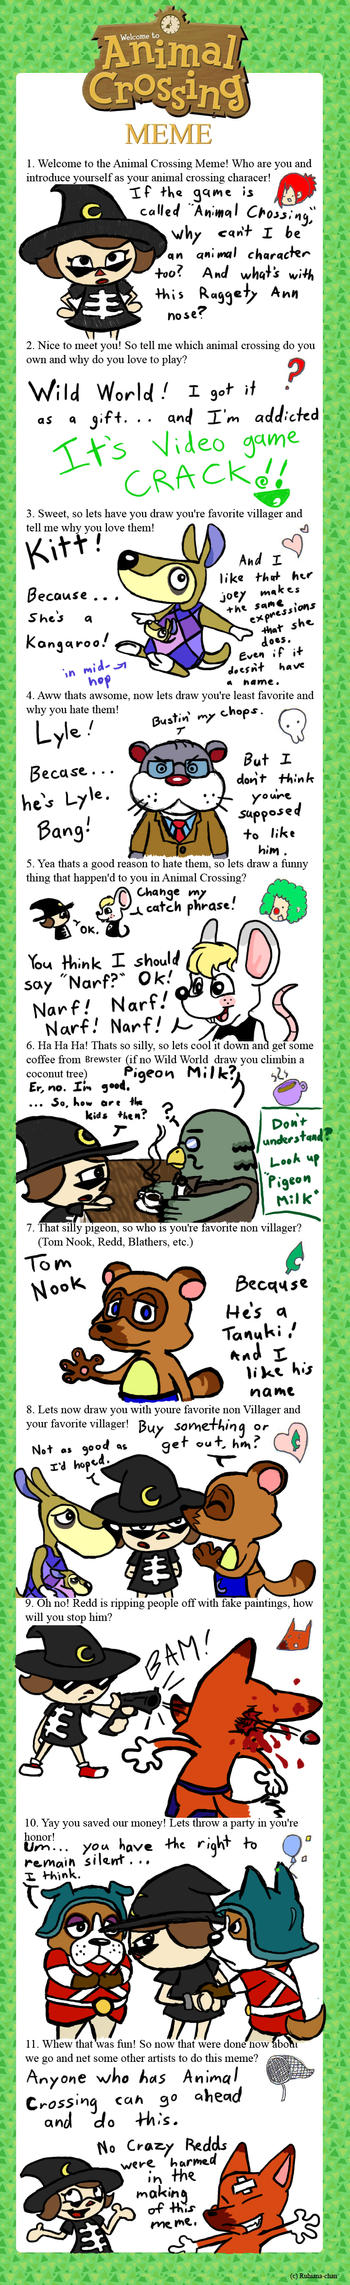 Animal Crossing Meme Filled by Shinigami-Ziggy